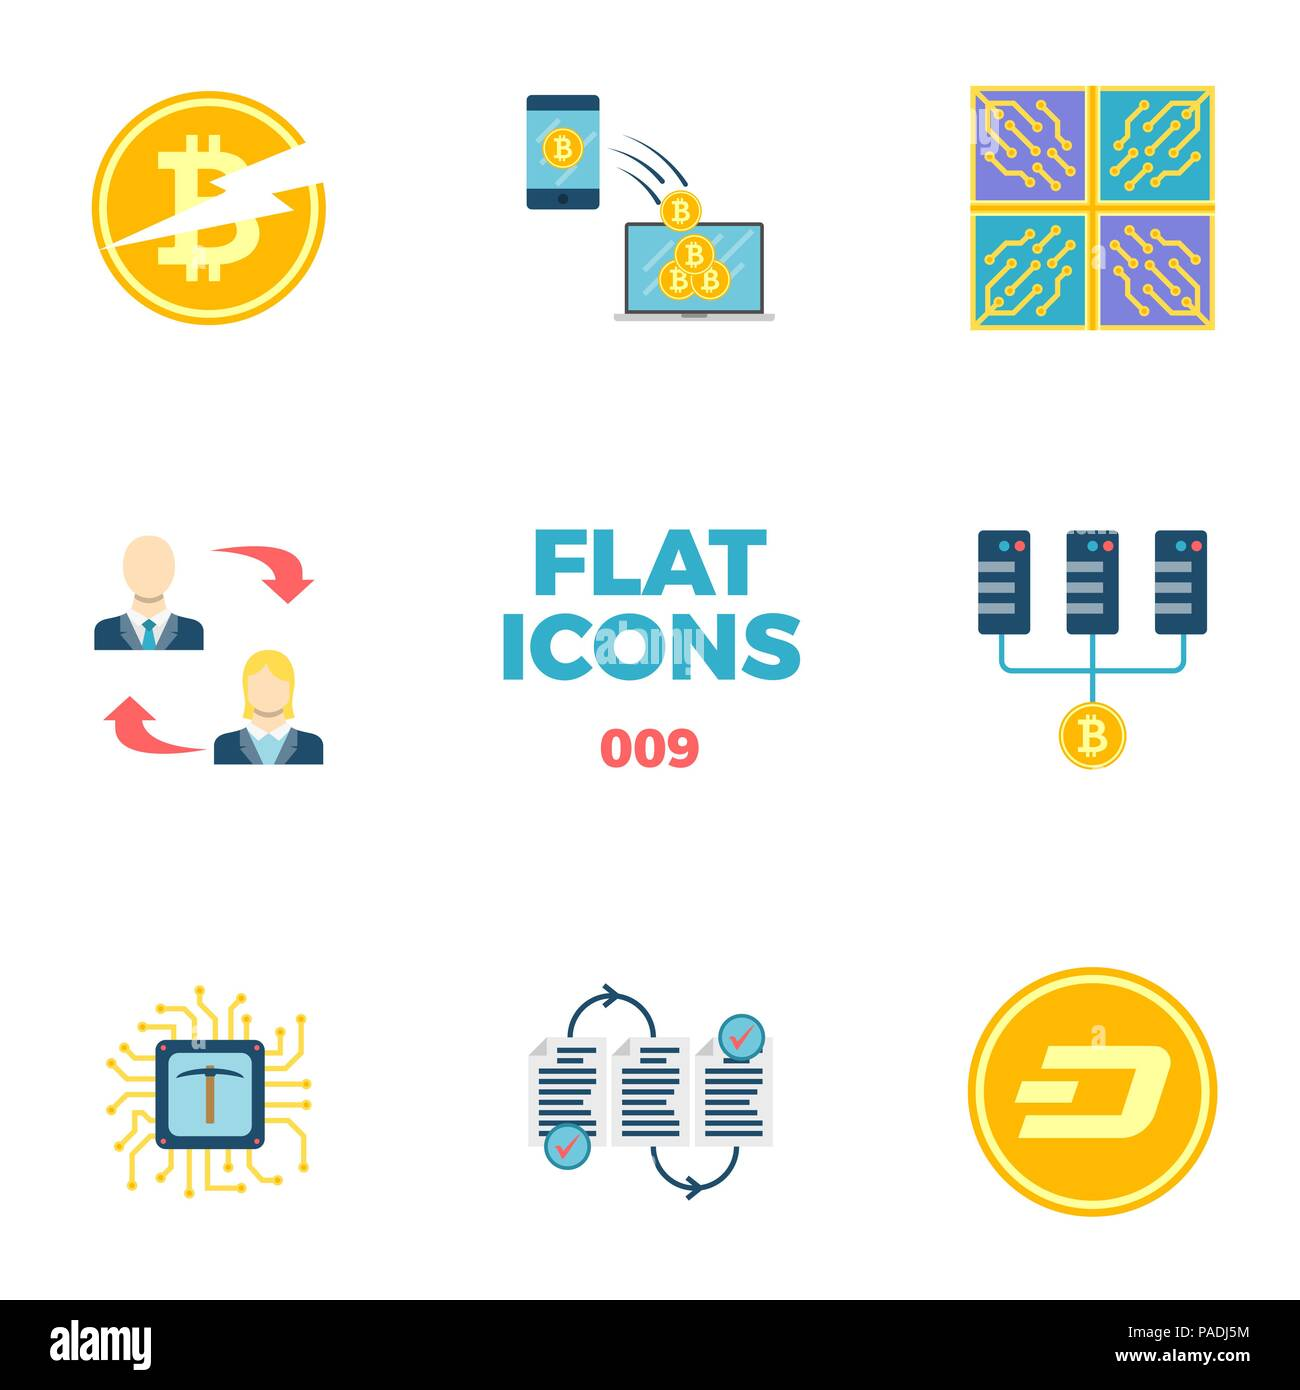 Cryptocurrency and Blockchain Flat Icons. - Stock Image